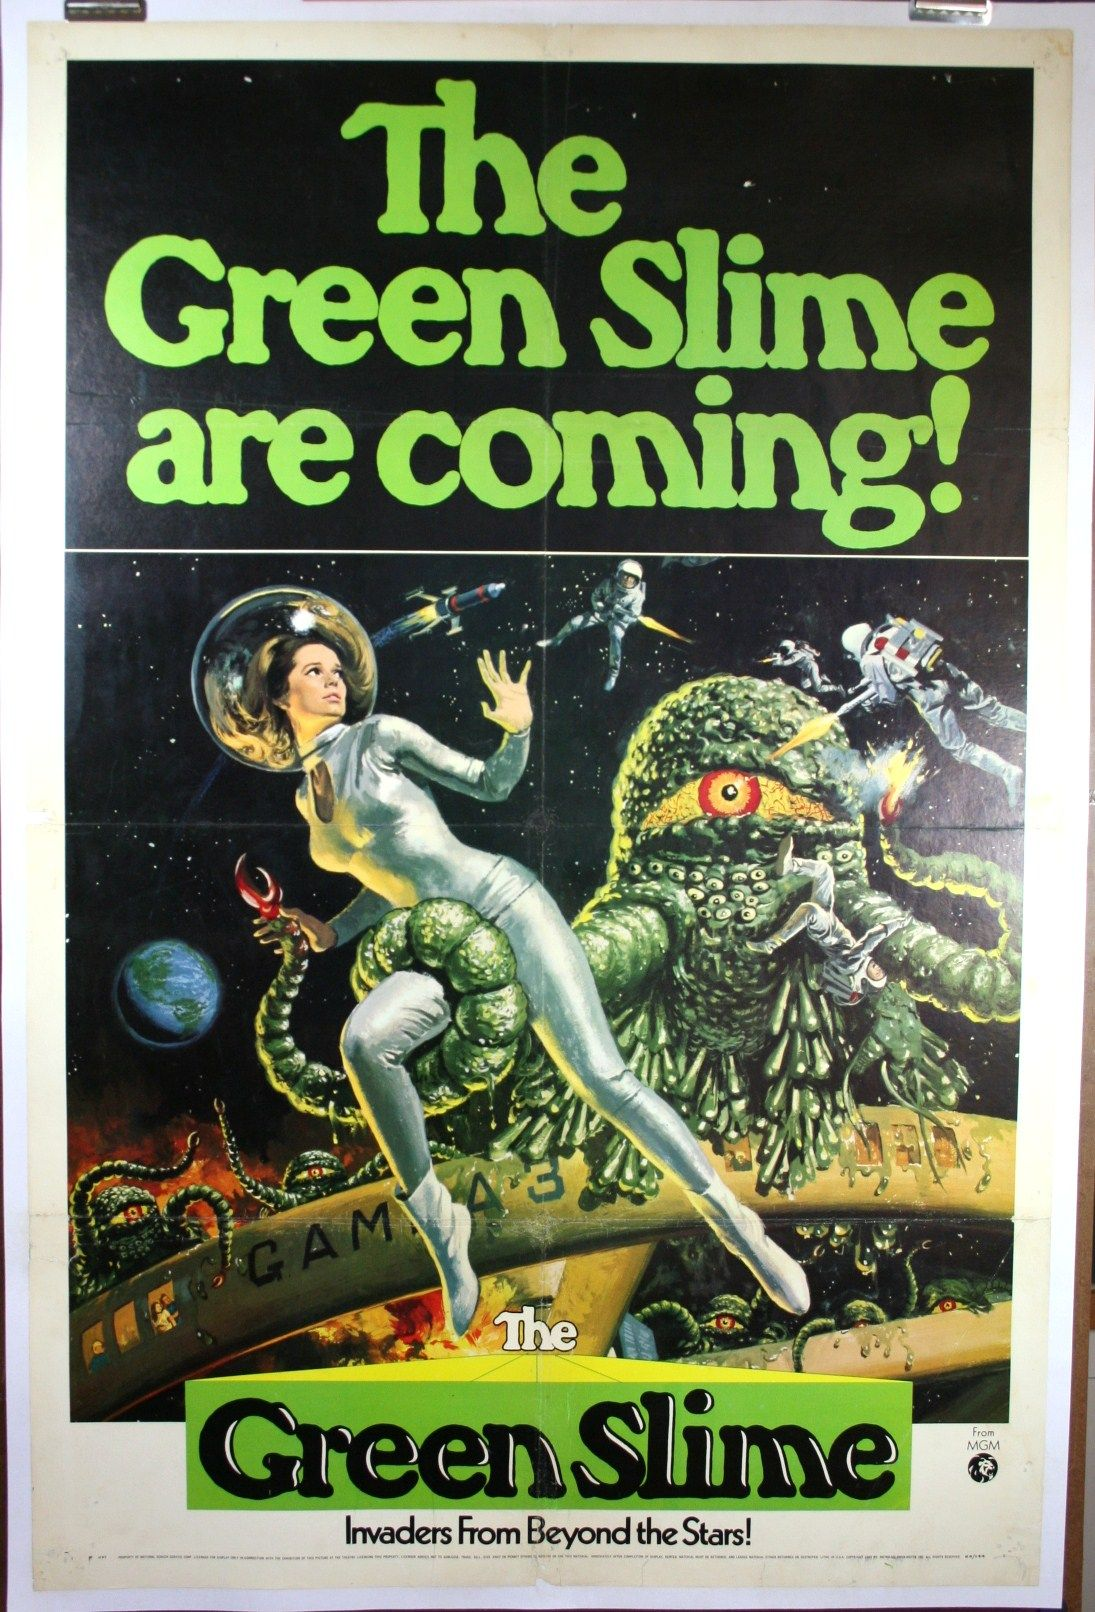 GREEN SLIME, 1968 SCI-FI MOVIE POSTER | sci-fi/sci-fact ...